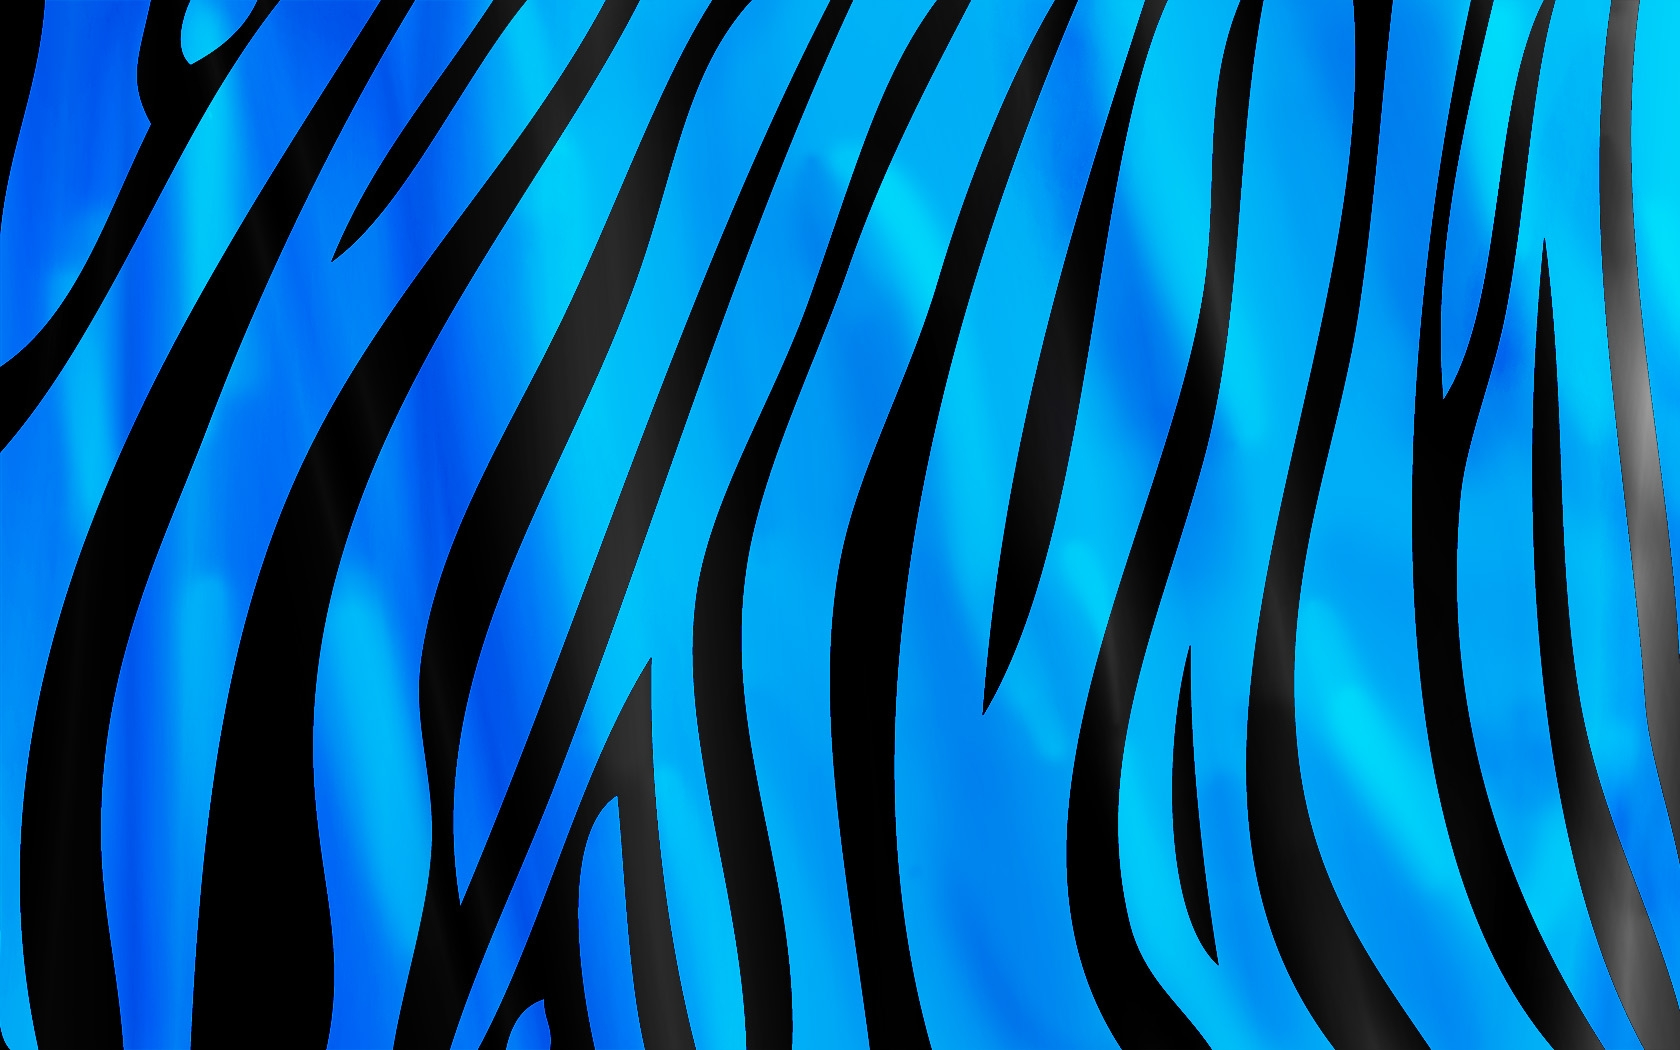 Glamorous Blue Zebra Print Hd Wallpaper